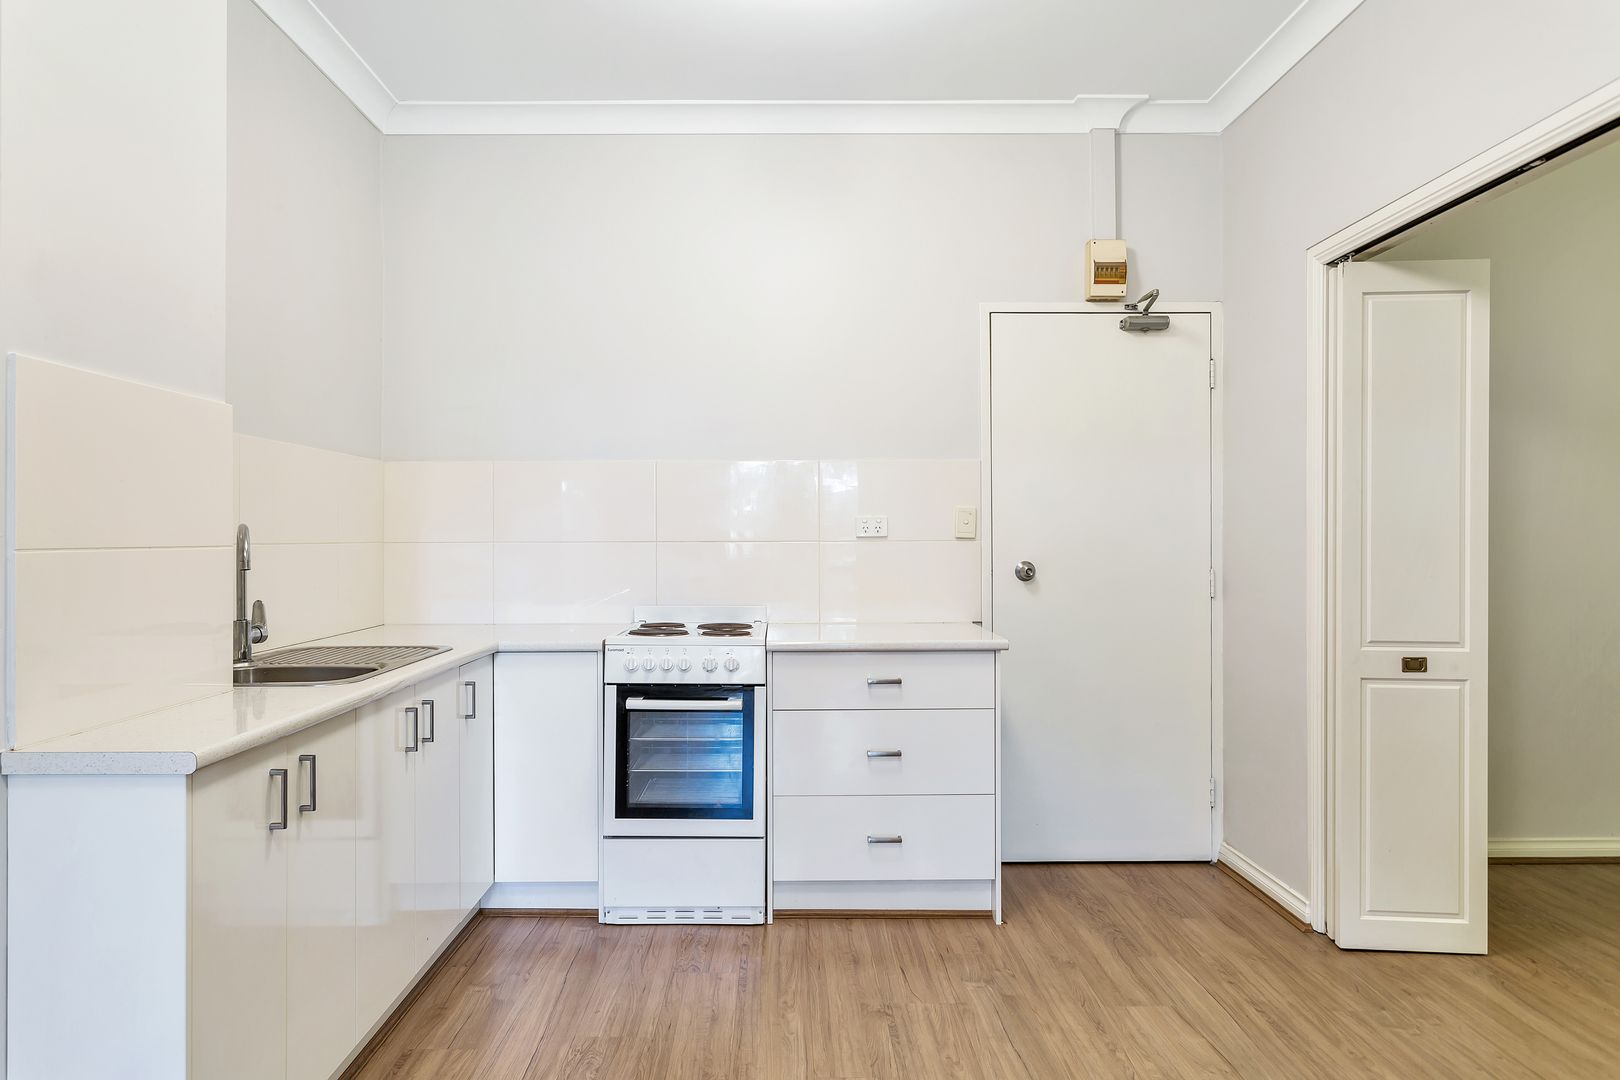 10/1 Waterfall Terrace, Burnside SA 5066, Image 1